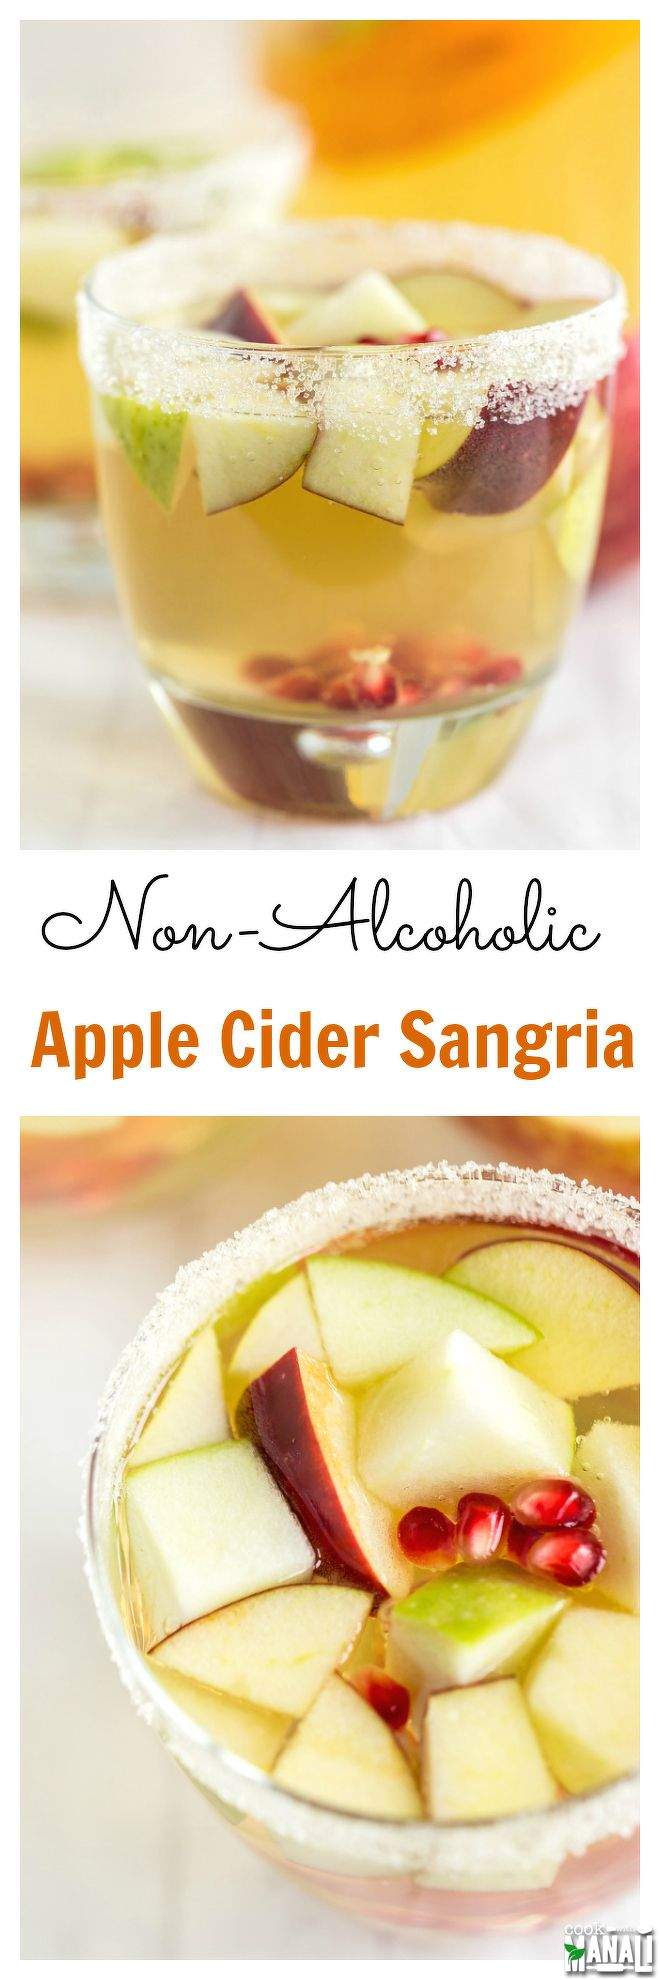 Easy to make and delicious, this Non Alcoholic Apple Cider Sangria is a refreshing drink to celebrate fall! Find the recipe on www.cookwithmanali.com (flavored water recipes pregnancy)